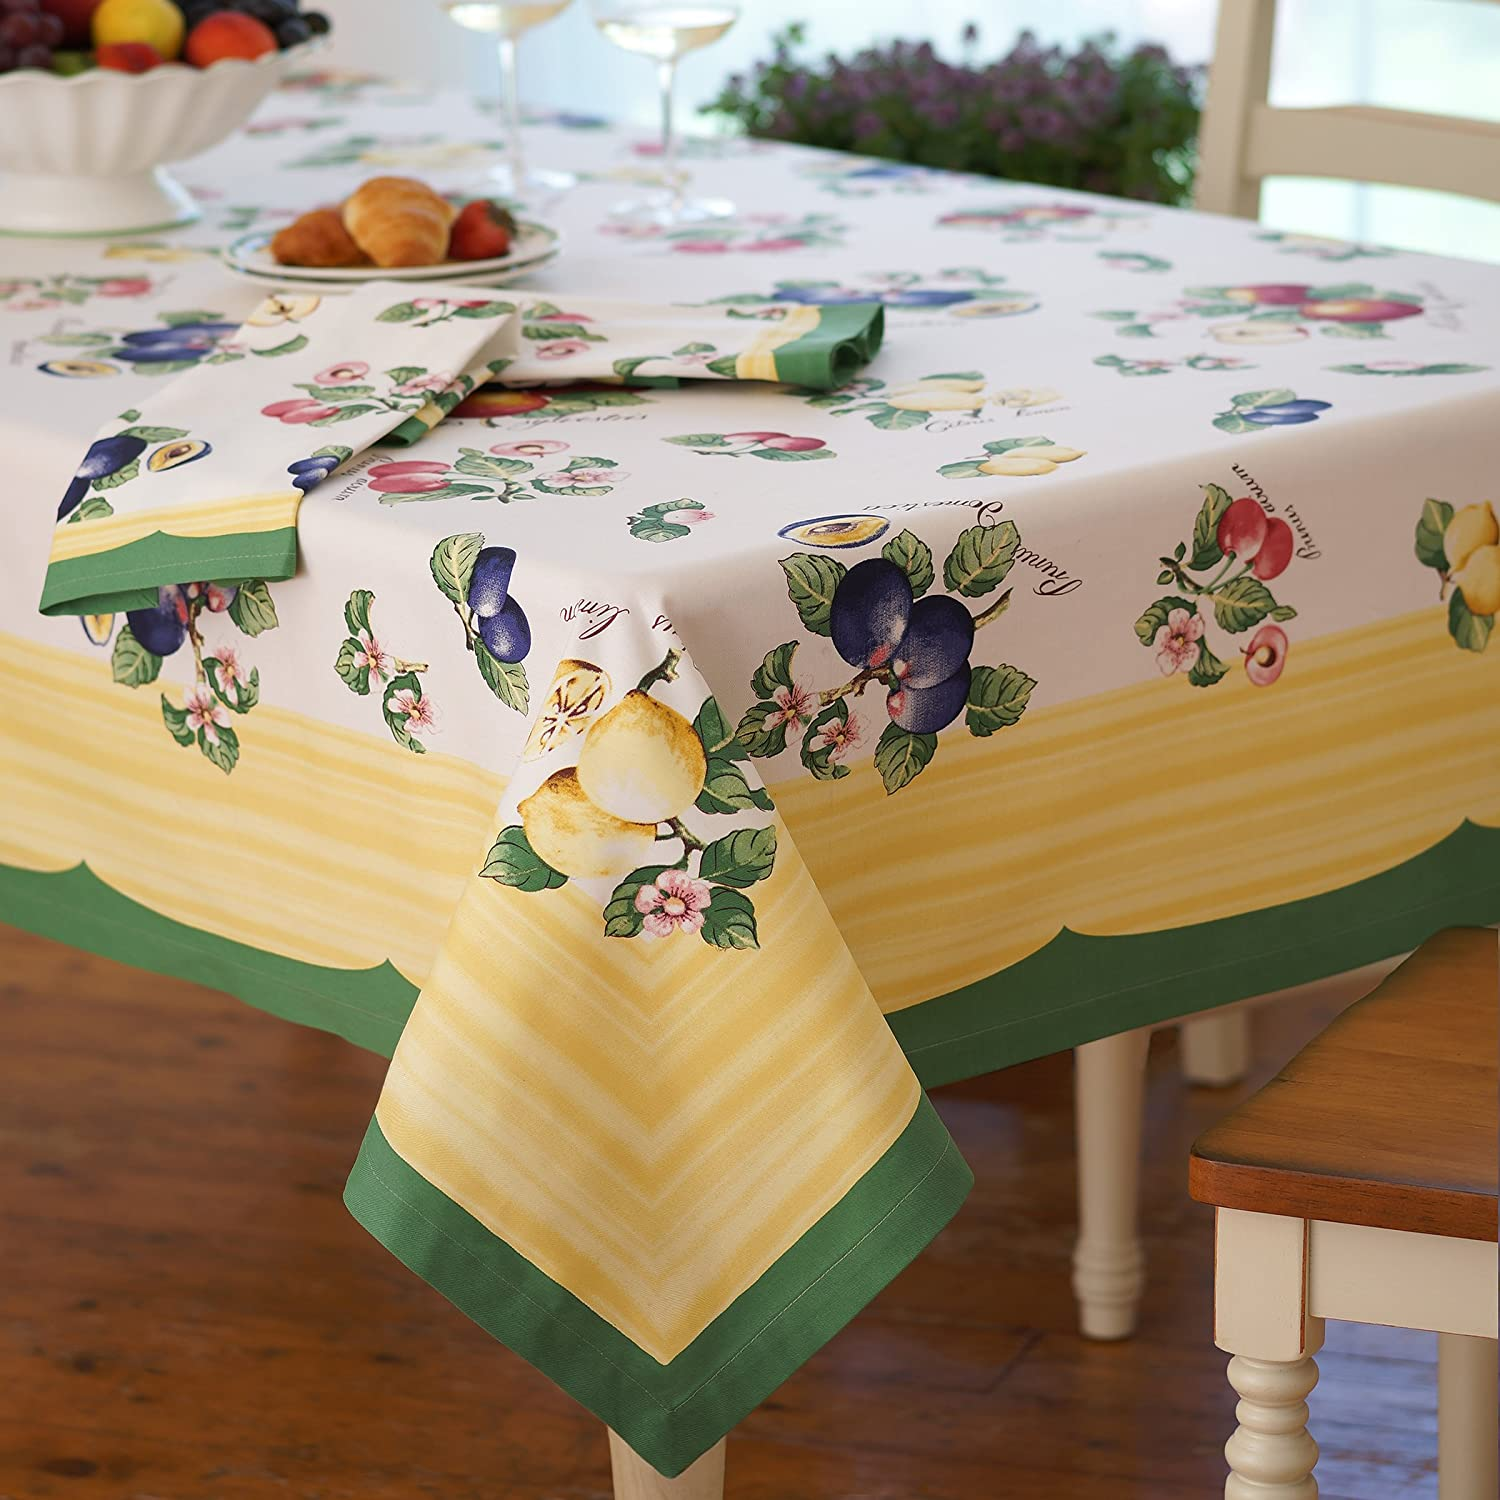 Porthault French Cotton tablecloth or Wall Hanging 67 x 84.5 by Yummy Tie-Dyes